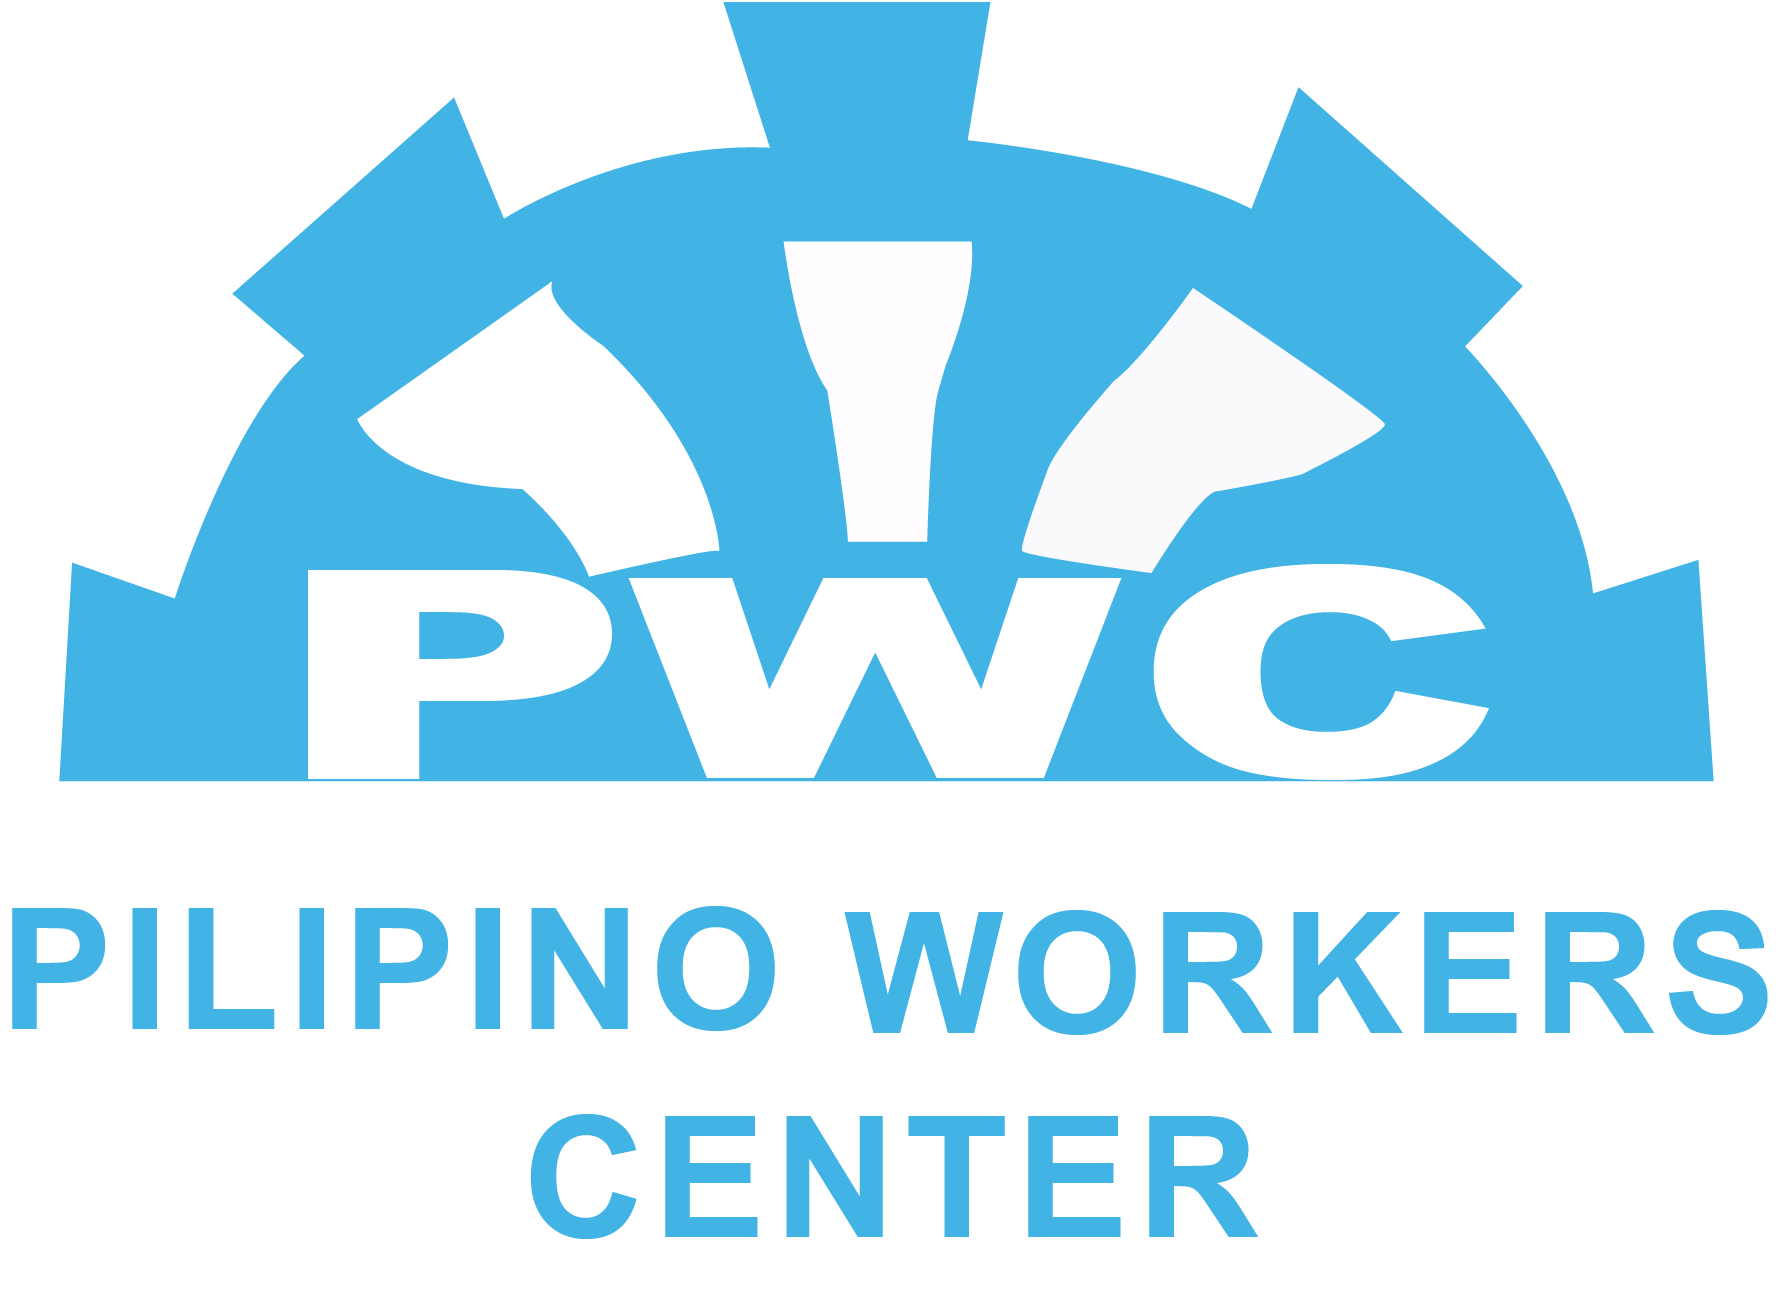 Pilipino_Workers_Center_logo_grey.png